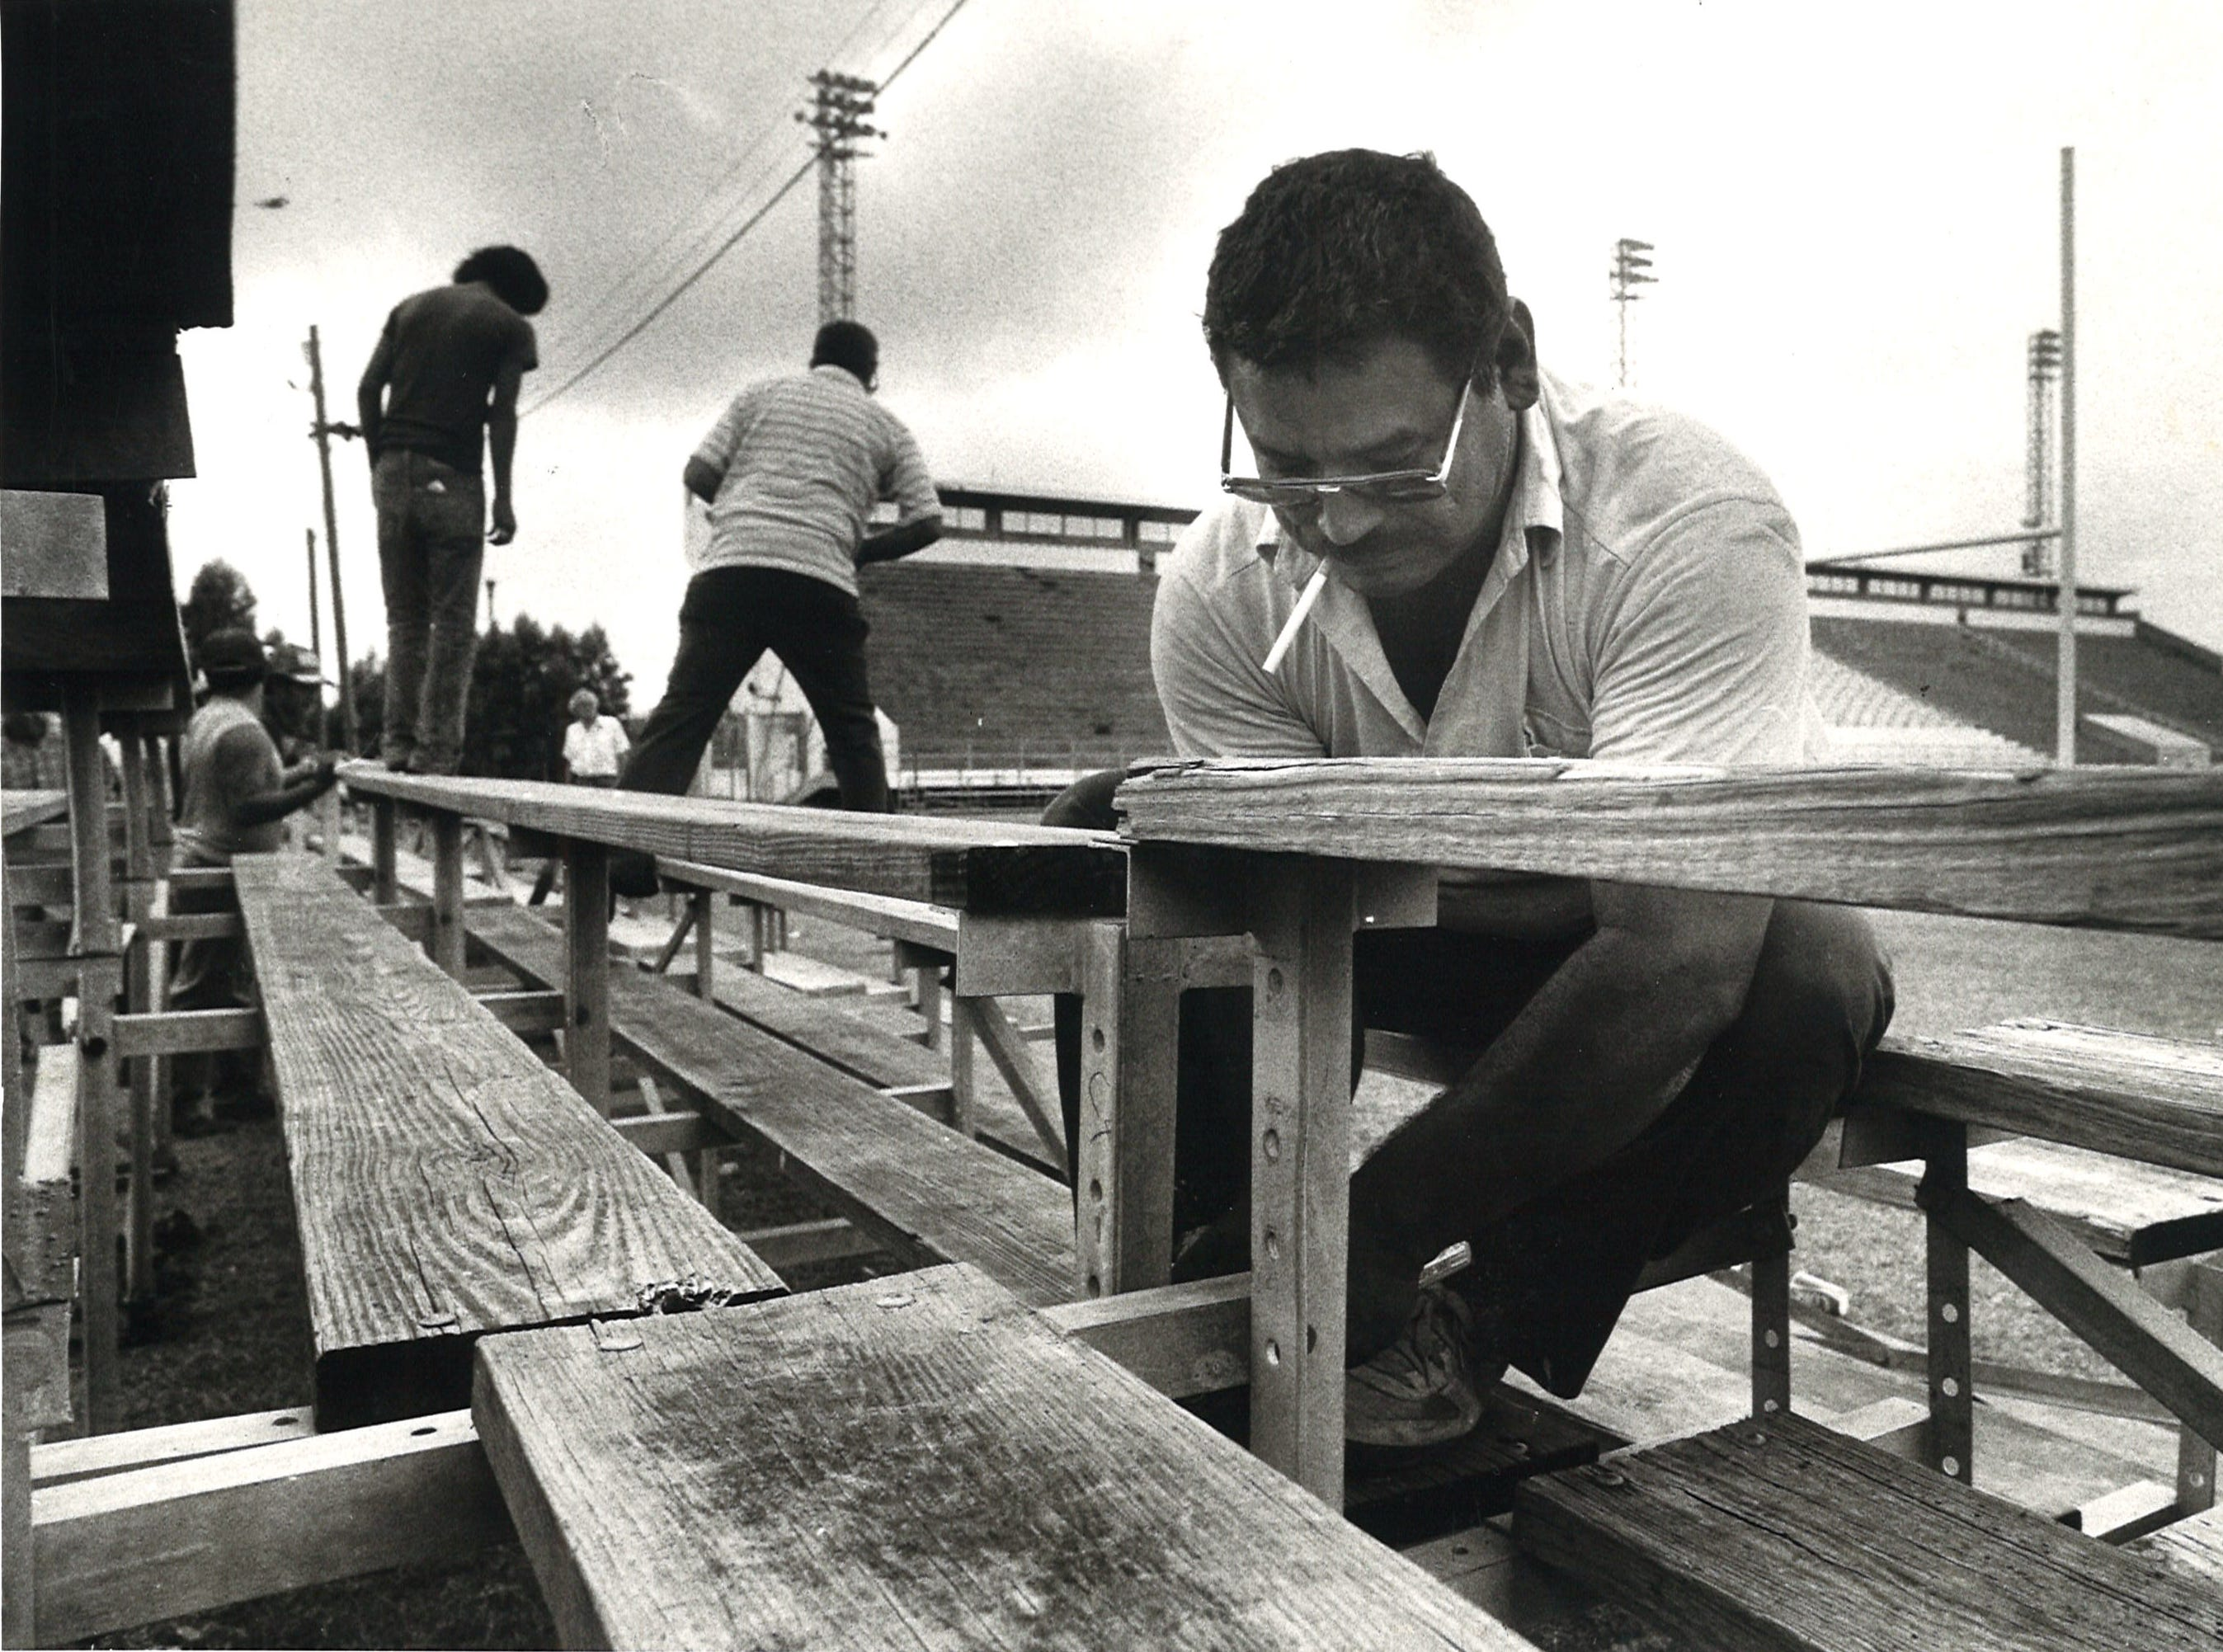 Jesus Ramirez, the caretaker of Buc Stadium, hooks together some of the extra bleachers for the upcoming football games on Nov. 10, 1982.